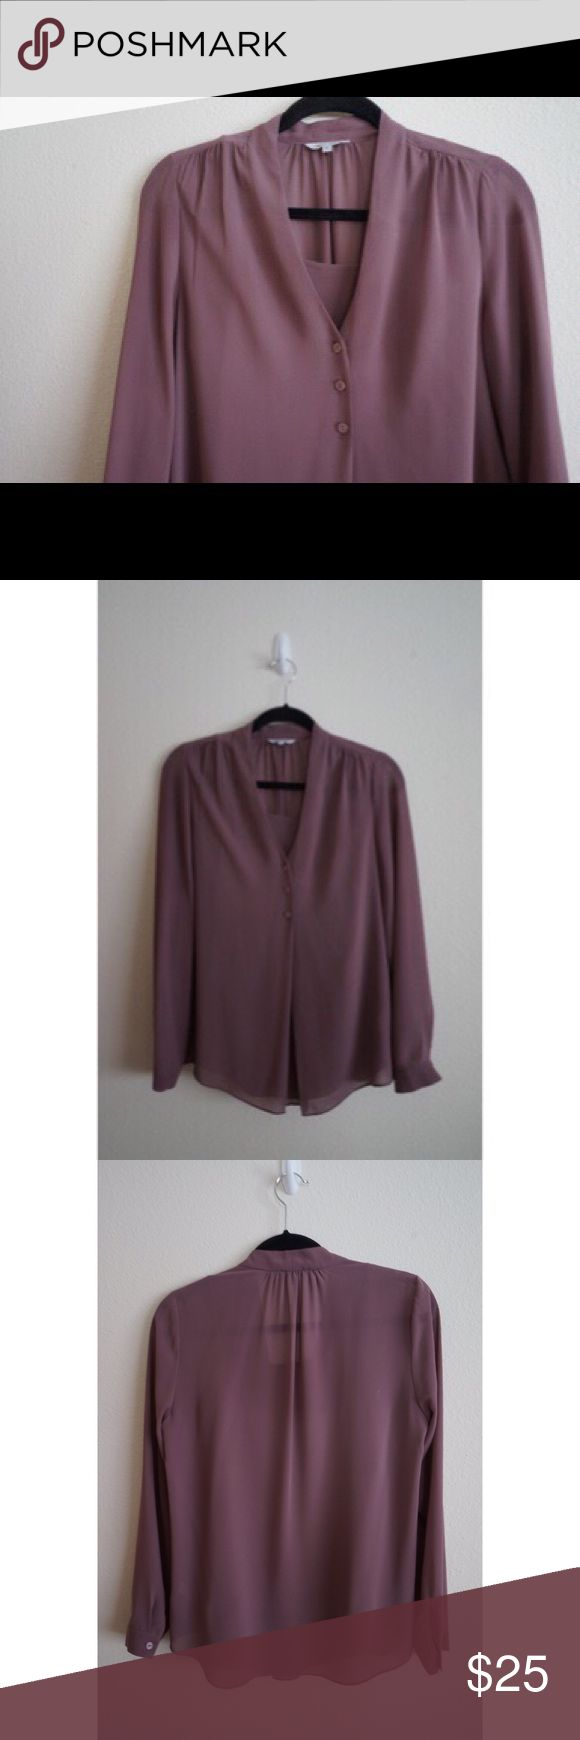 Naked Zebra Women's Long-Sleeve V-Neck Blouse Women's long sleeve polyester purple blouse with an inner camisole layer already connected to the blouse! 3 button detail and flows out at the bottom. Excellent condition! Size Medium Naked Zebra Tops Blouses